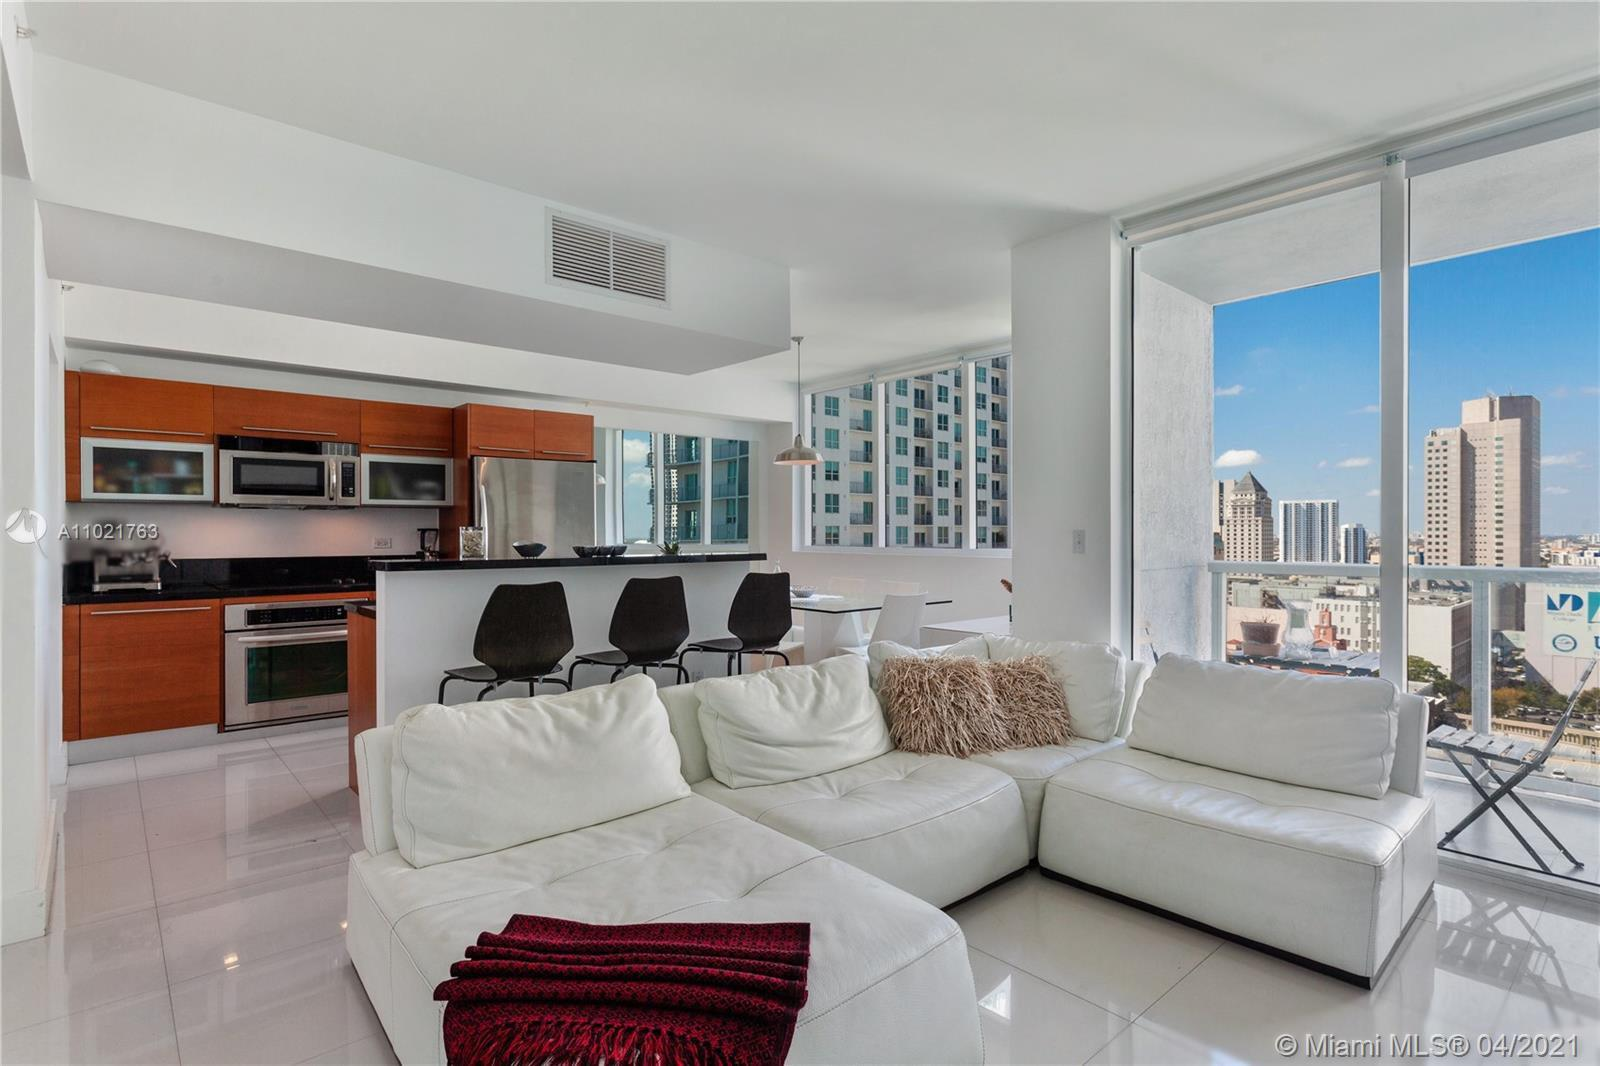 Large 1 bedroom + Den converted into a 2 bedrooms 2 baths. Corner unit in the Heart of Downtown Miami. Unit has tile floor and in well kept condition. Building offers resort like amenities with gym, heated pool, and much more. Great location for those looking to take profit of public transportation. Easy to show, 24hs app.